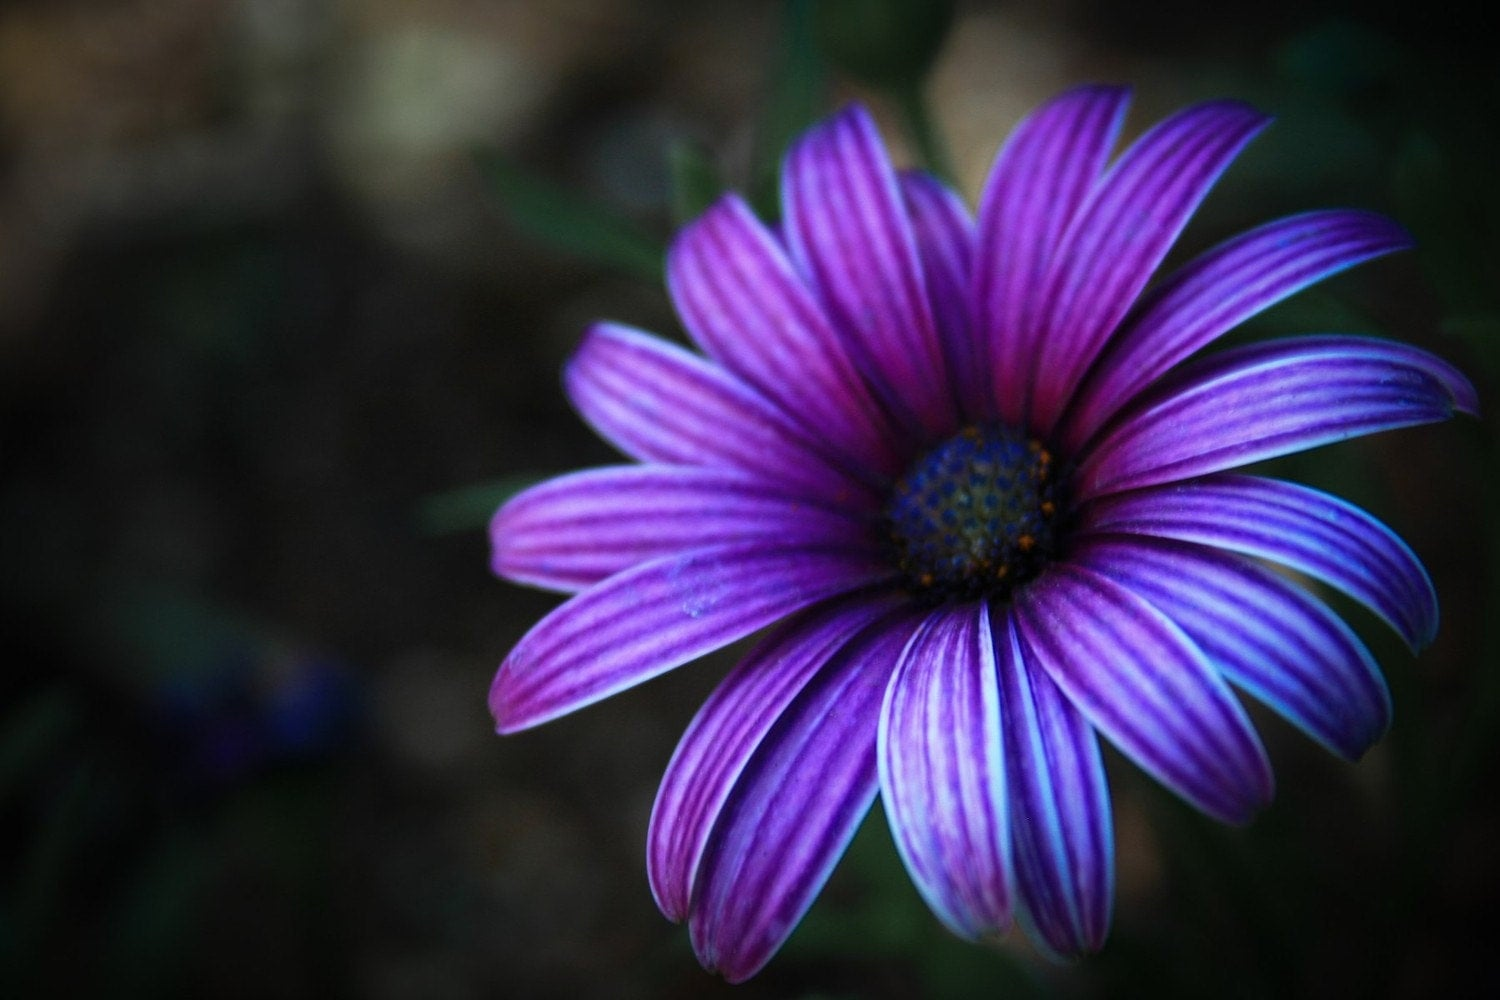 Purple Daisy Photo Print 5x7 Matted and Ready to Ship